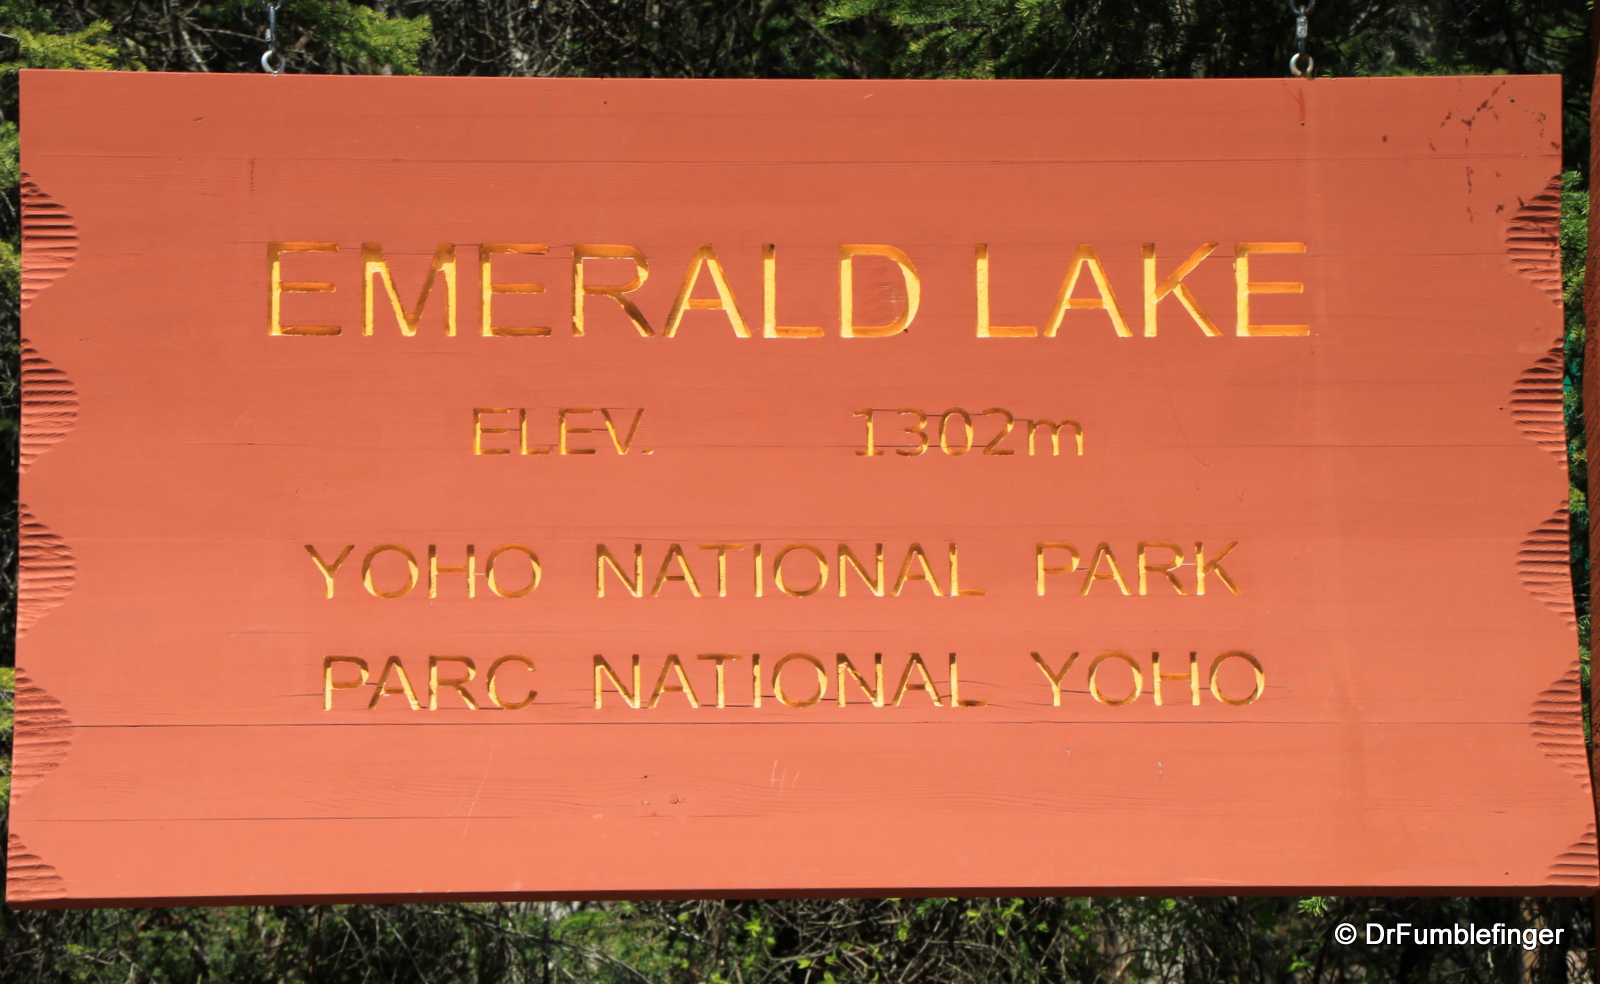 Emerald Lake sign